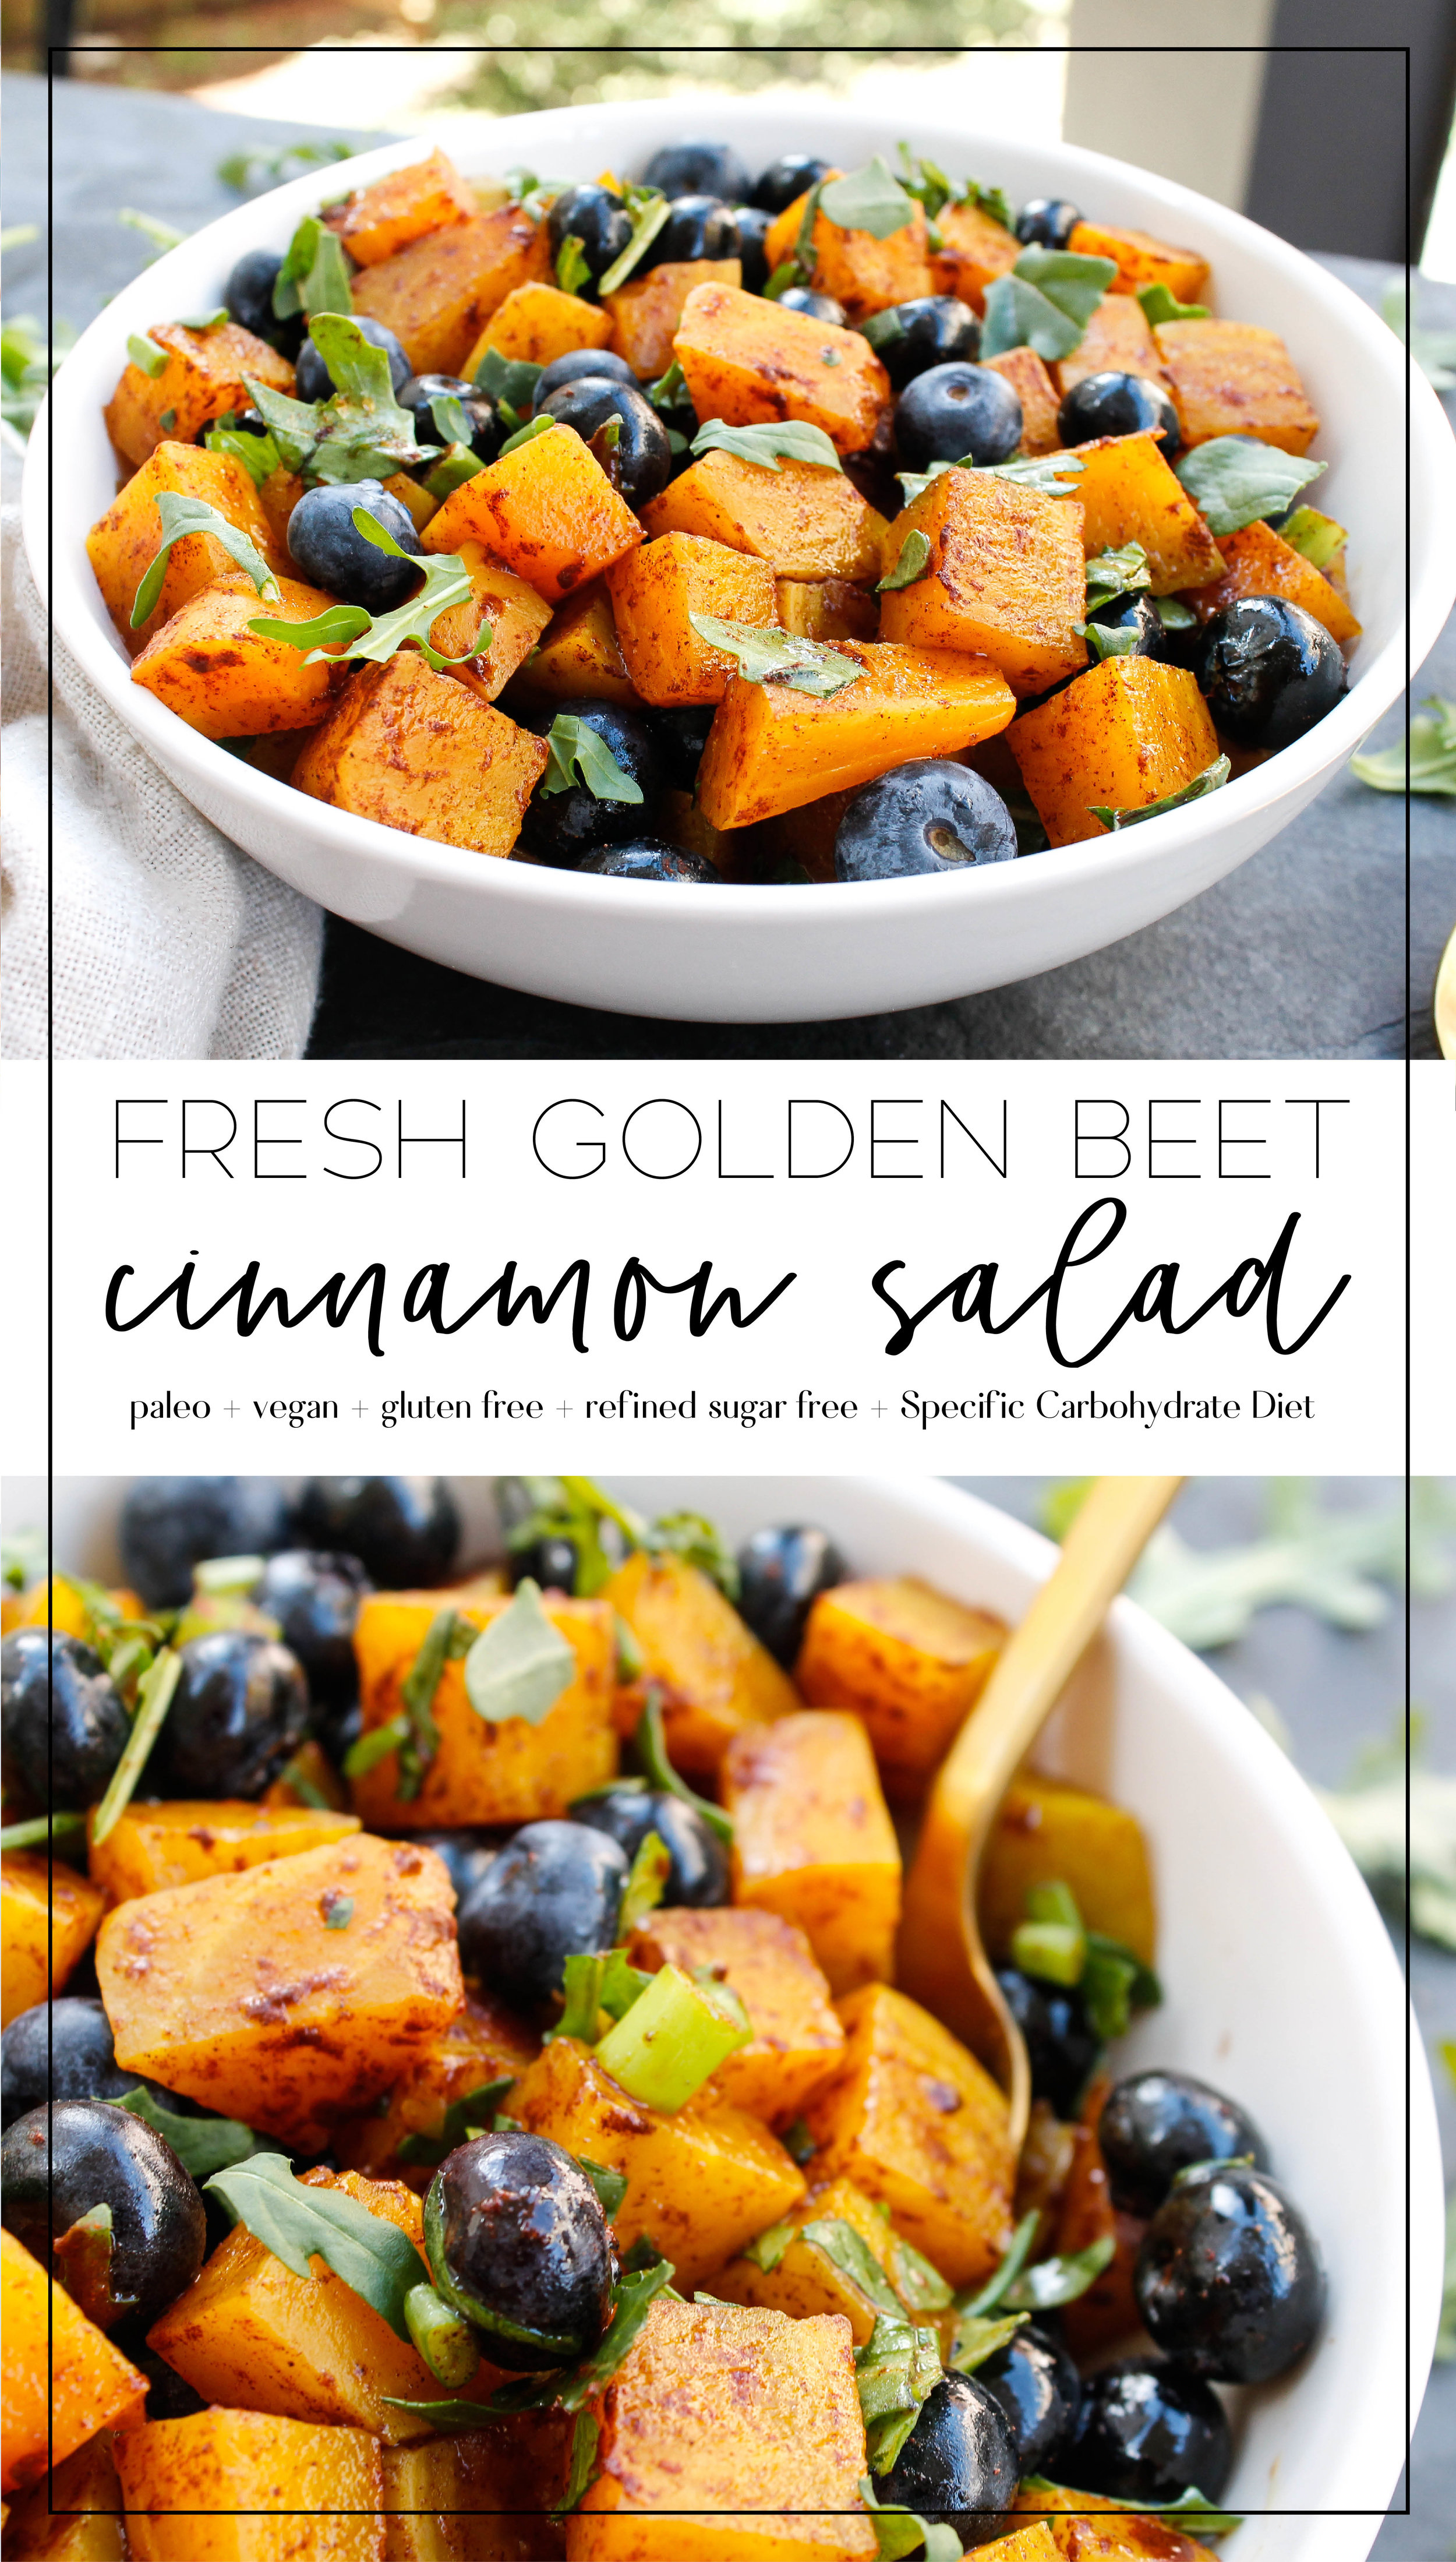 Paleo + Vegan Golden Beet Salad || This beet salad is light and fresh - perfect for every summer occasion! It is also refined sugar free and Specific Carbohydrate Diet friendly || #specificcarbohydratediet #scddet #veganbeetsalad #vegandinner #vegansidedish #paleosidedish || plentyandwell.com